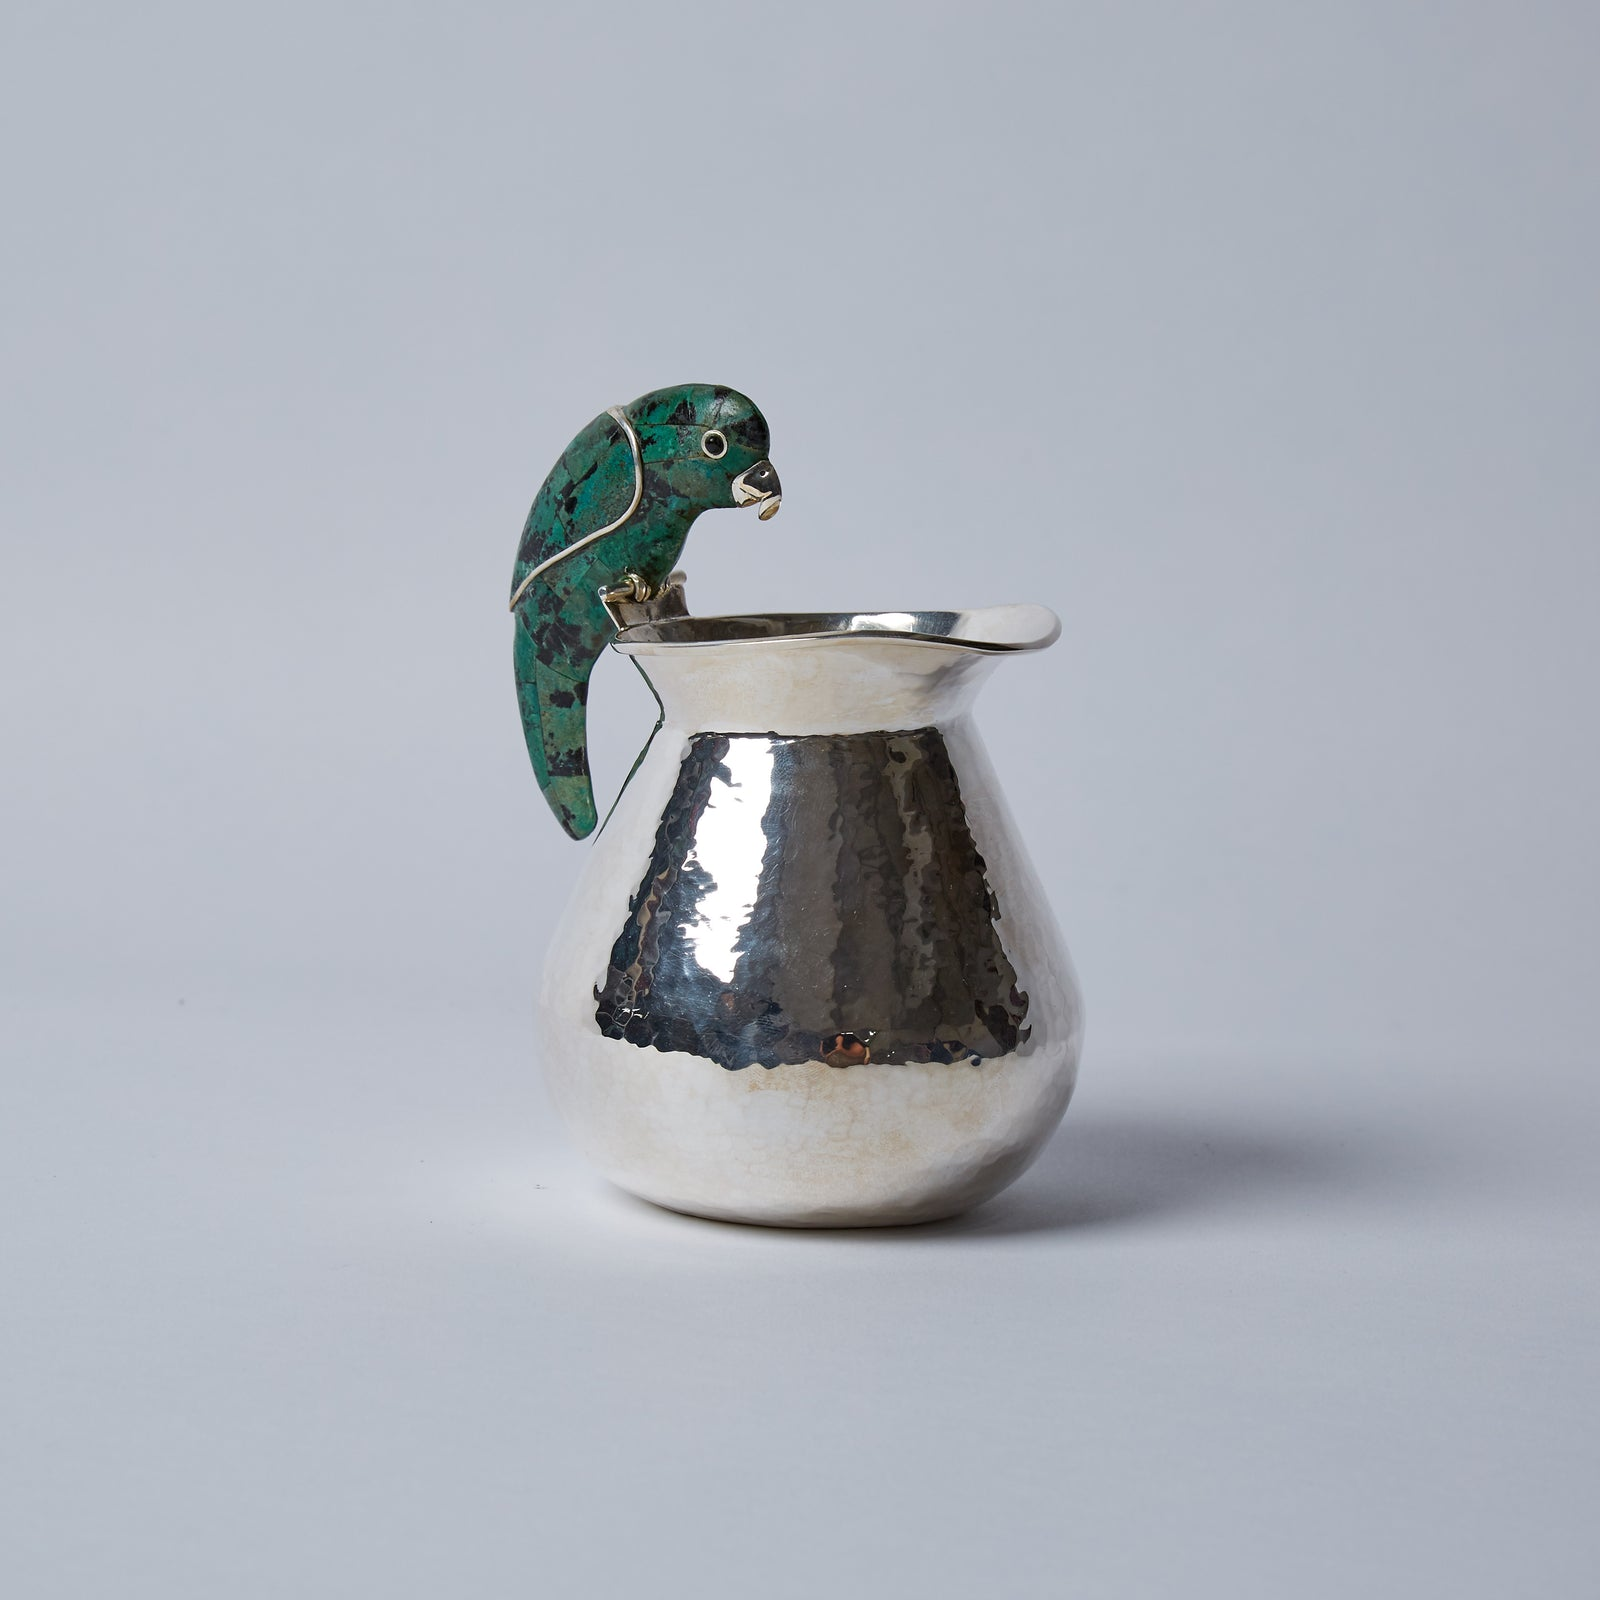 Carefully mosaicked in malachite, he can be paired alongside any of our sugar pots or other cream jugs for a talkative collection.